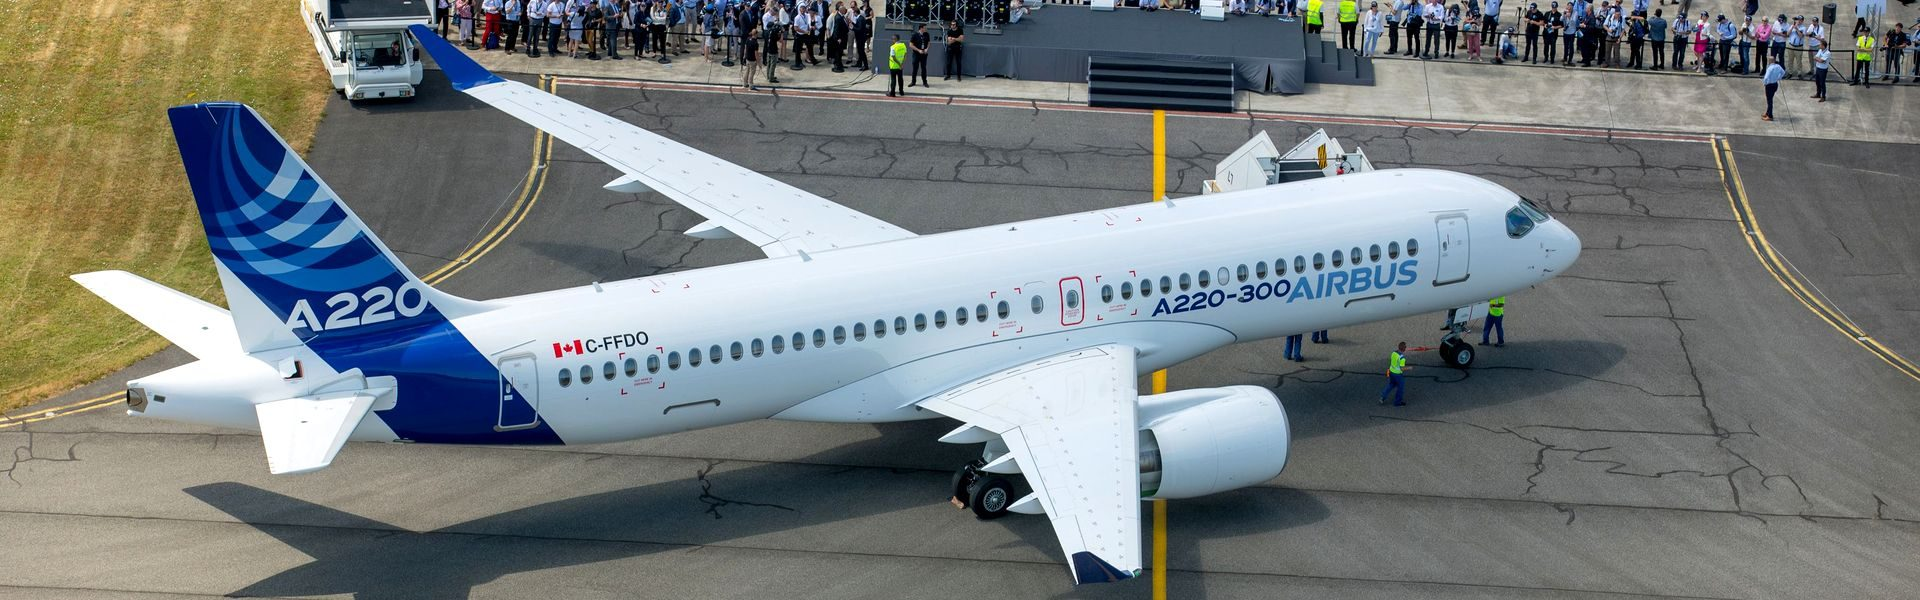 Window of opportunities for Airbus A220